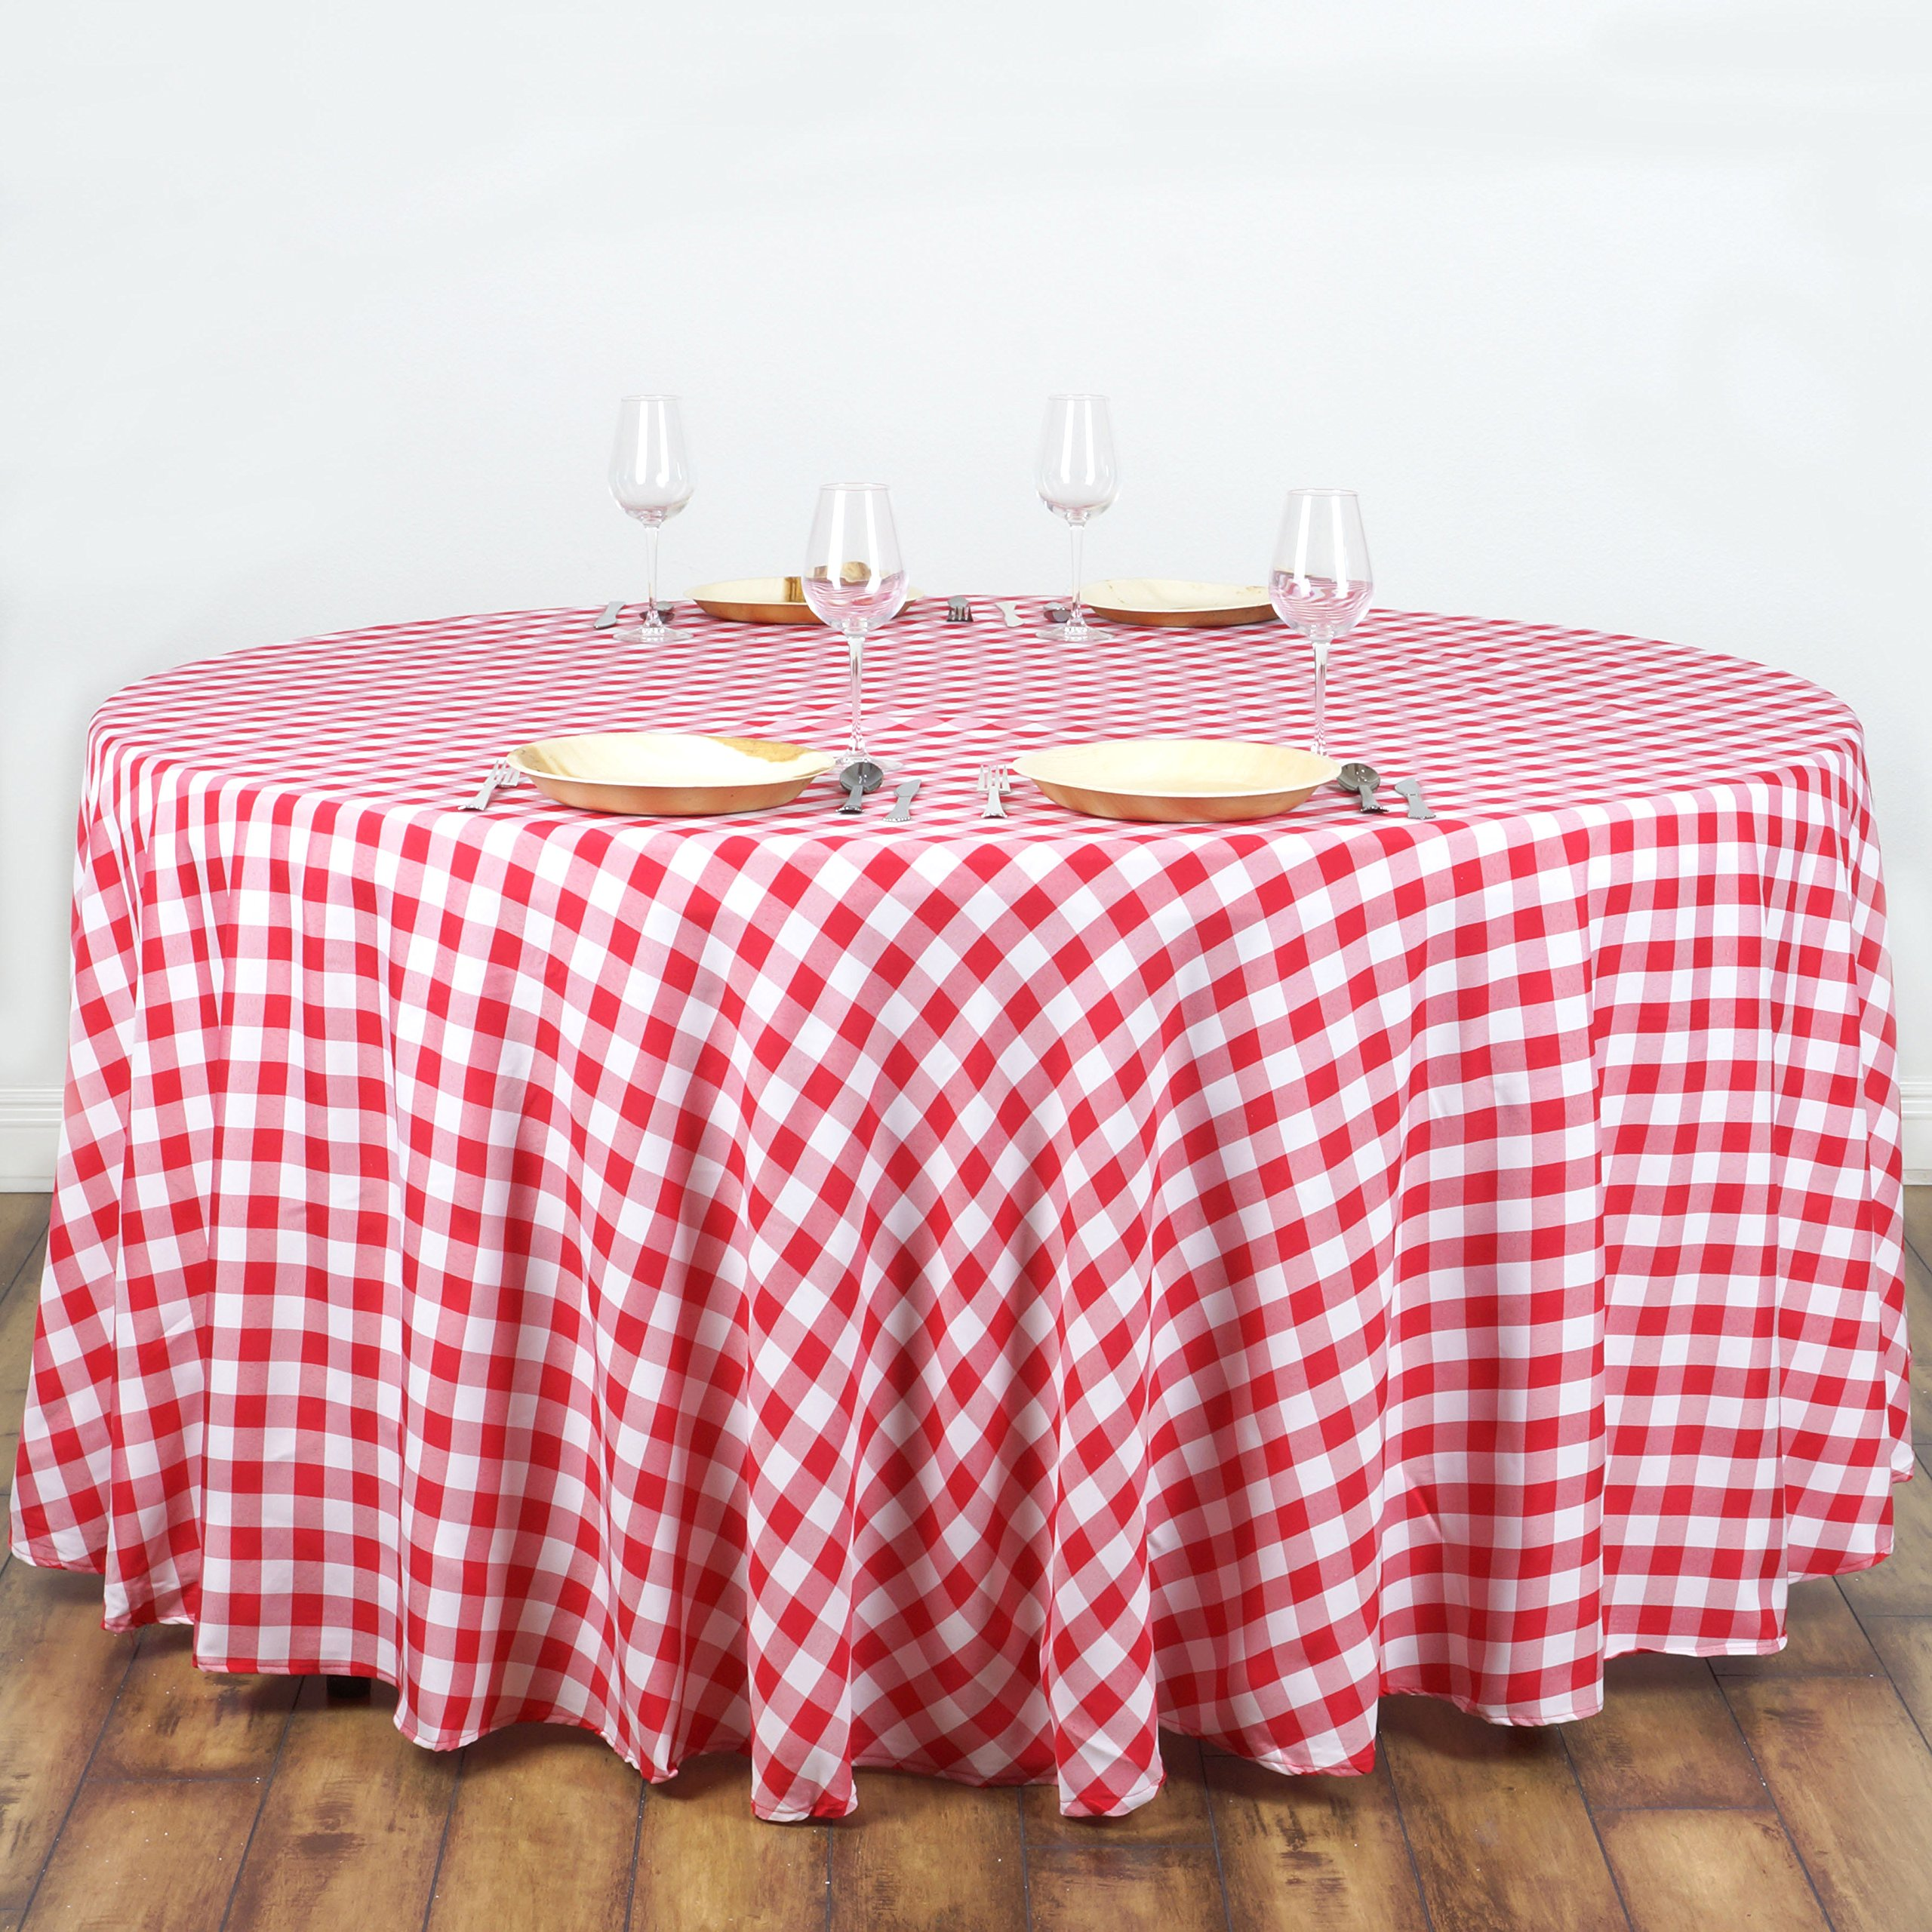 Efavormart 108'' Round RED/WHITE Checkered Wholesale Gingham Polyester Linen Picnic Restaurant Dinner Tablecloth